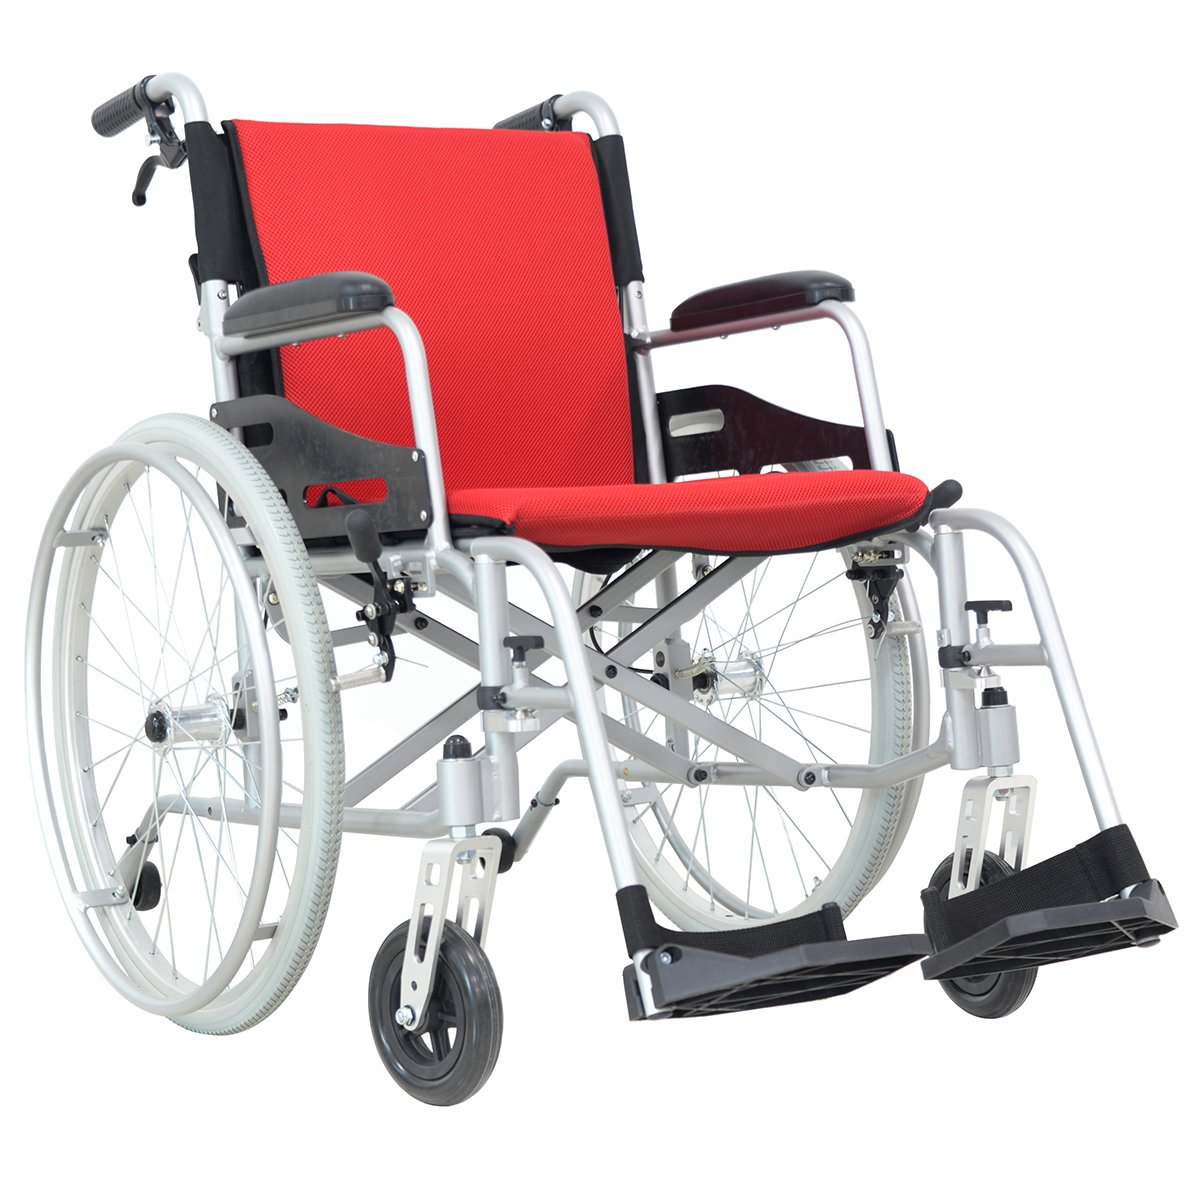 Hi-Fortune 21 lbs Lightweight Medical Self-Propelled Manual Wheelchair with Full length Padded Armrests and Hand Brakes, Portable and Folding with Magnesium Alloy, 17.5'' Seat, Red